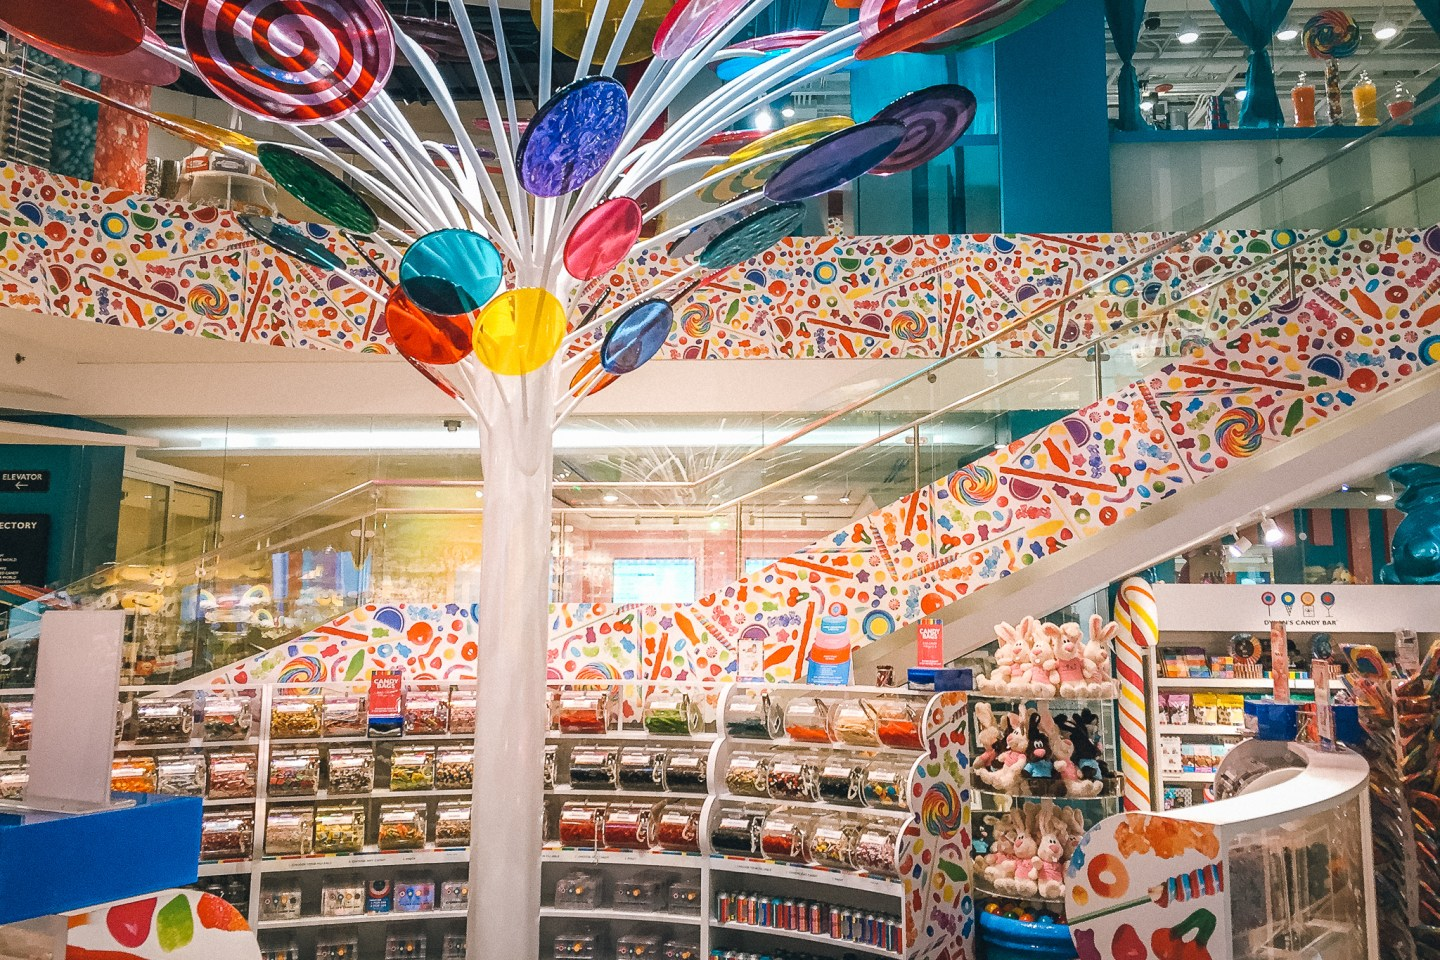 Things to do with one day in Chicago: Dylan's Candy Bar